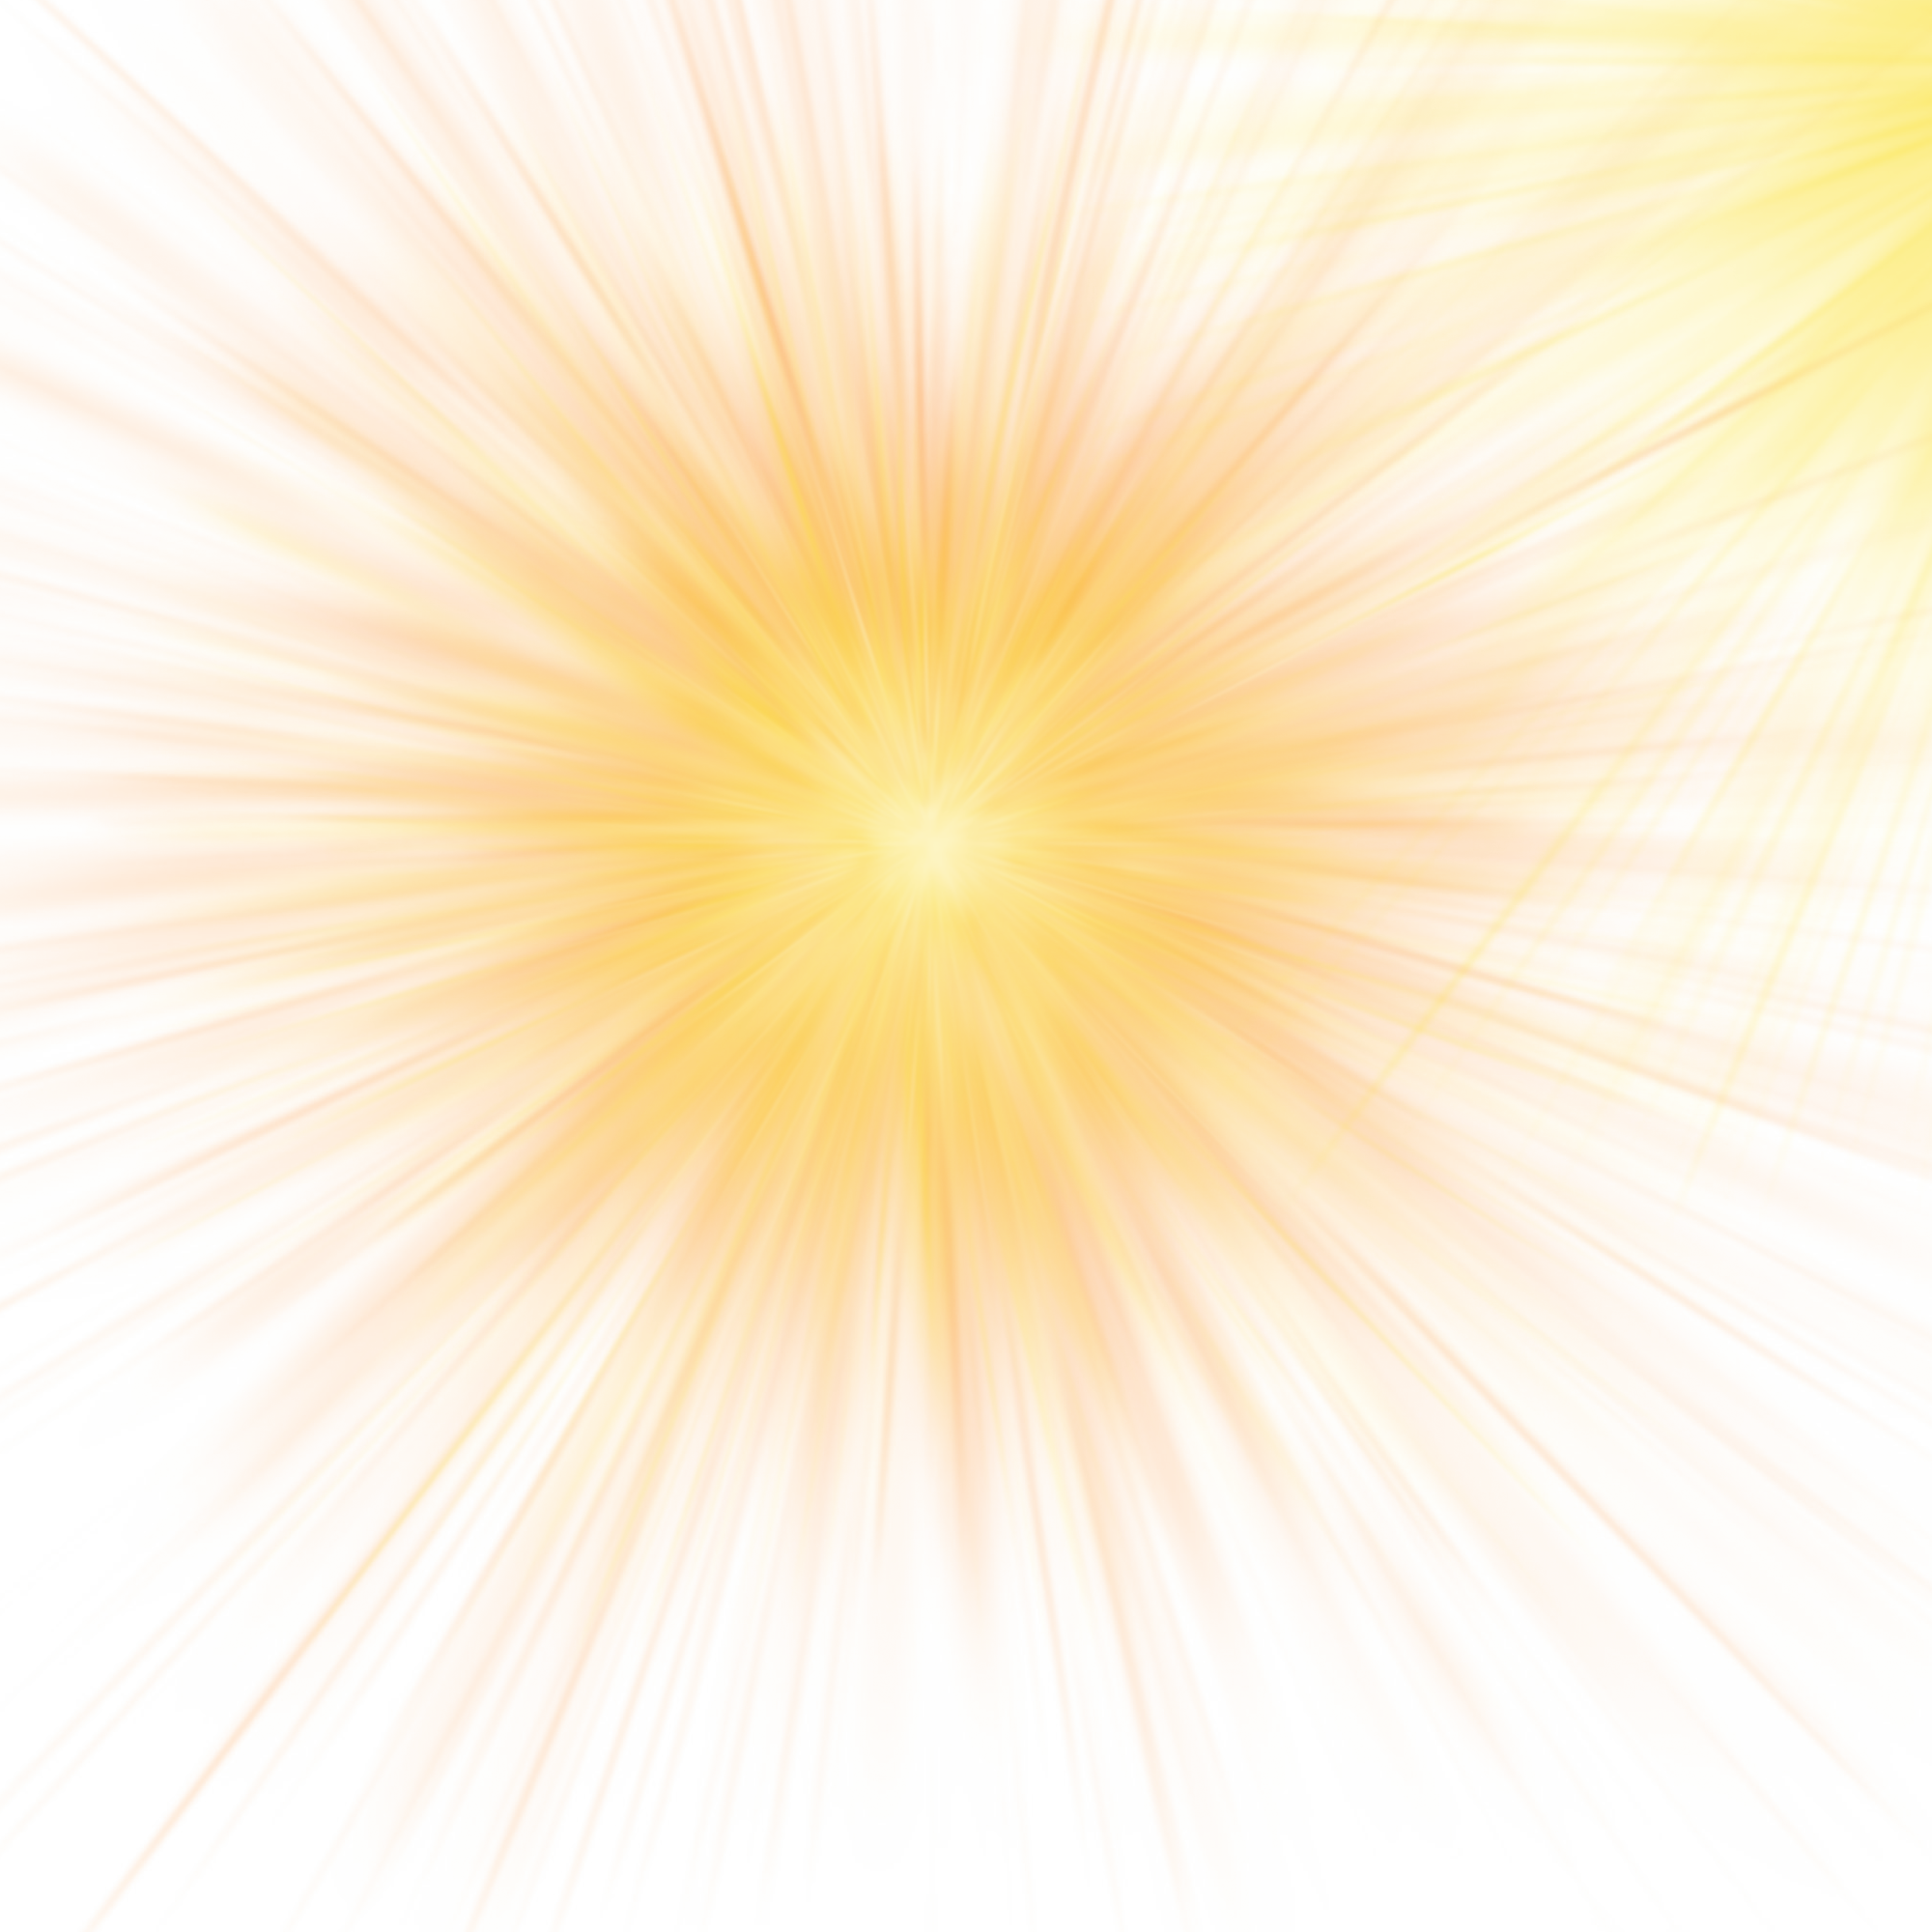 Sunlight effect png. Abstract light transparent image